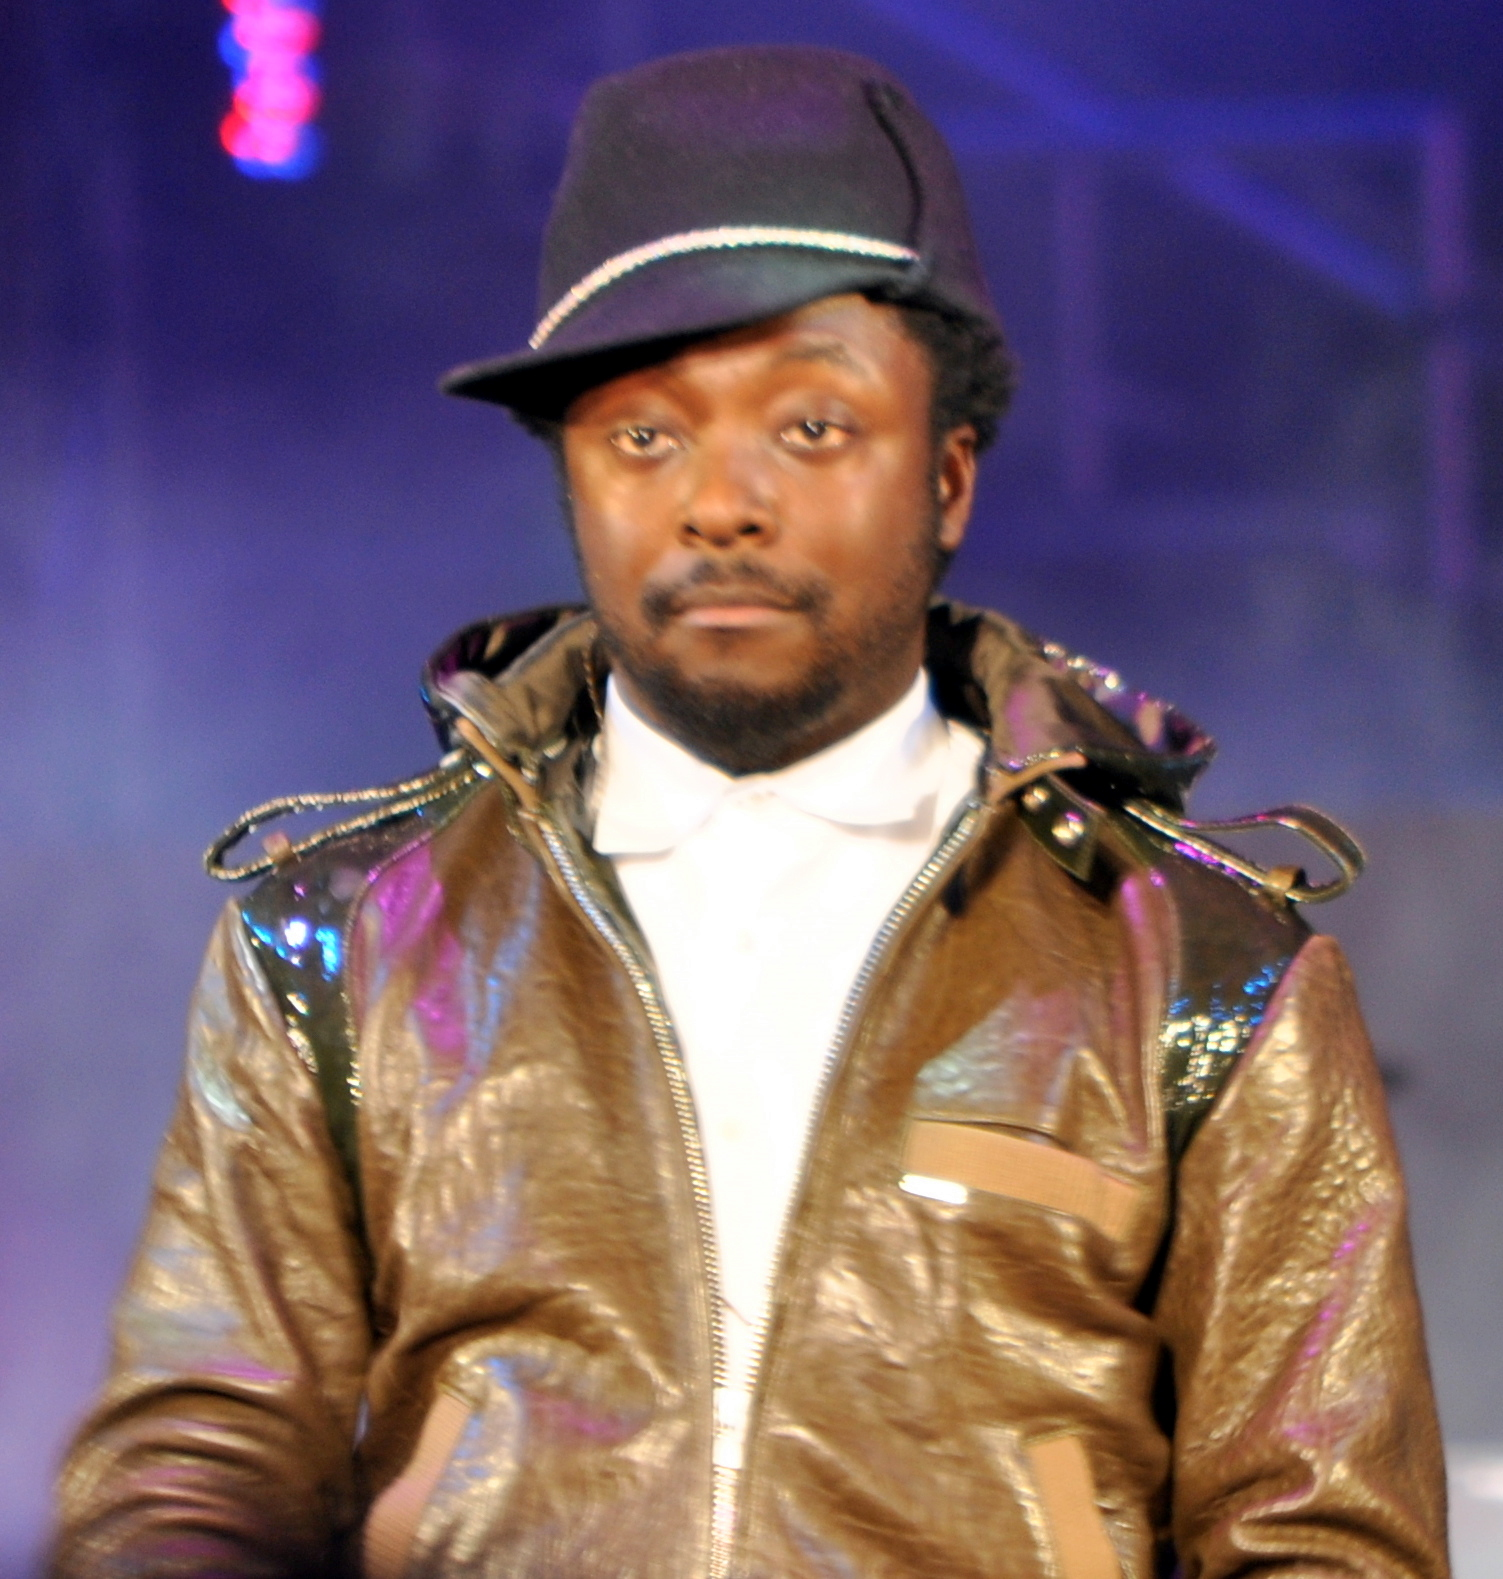 The Voice coaches and mentors Will.i.am